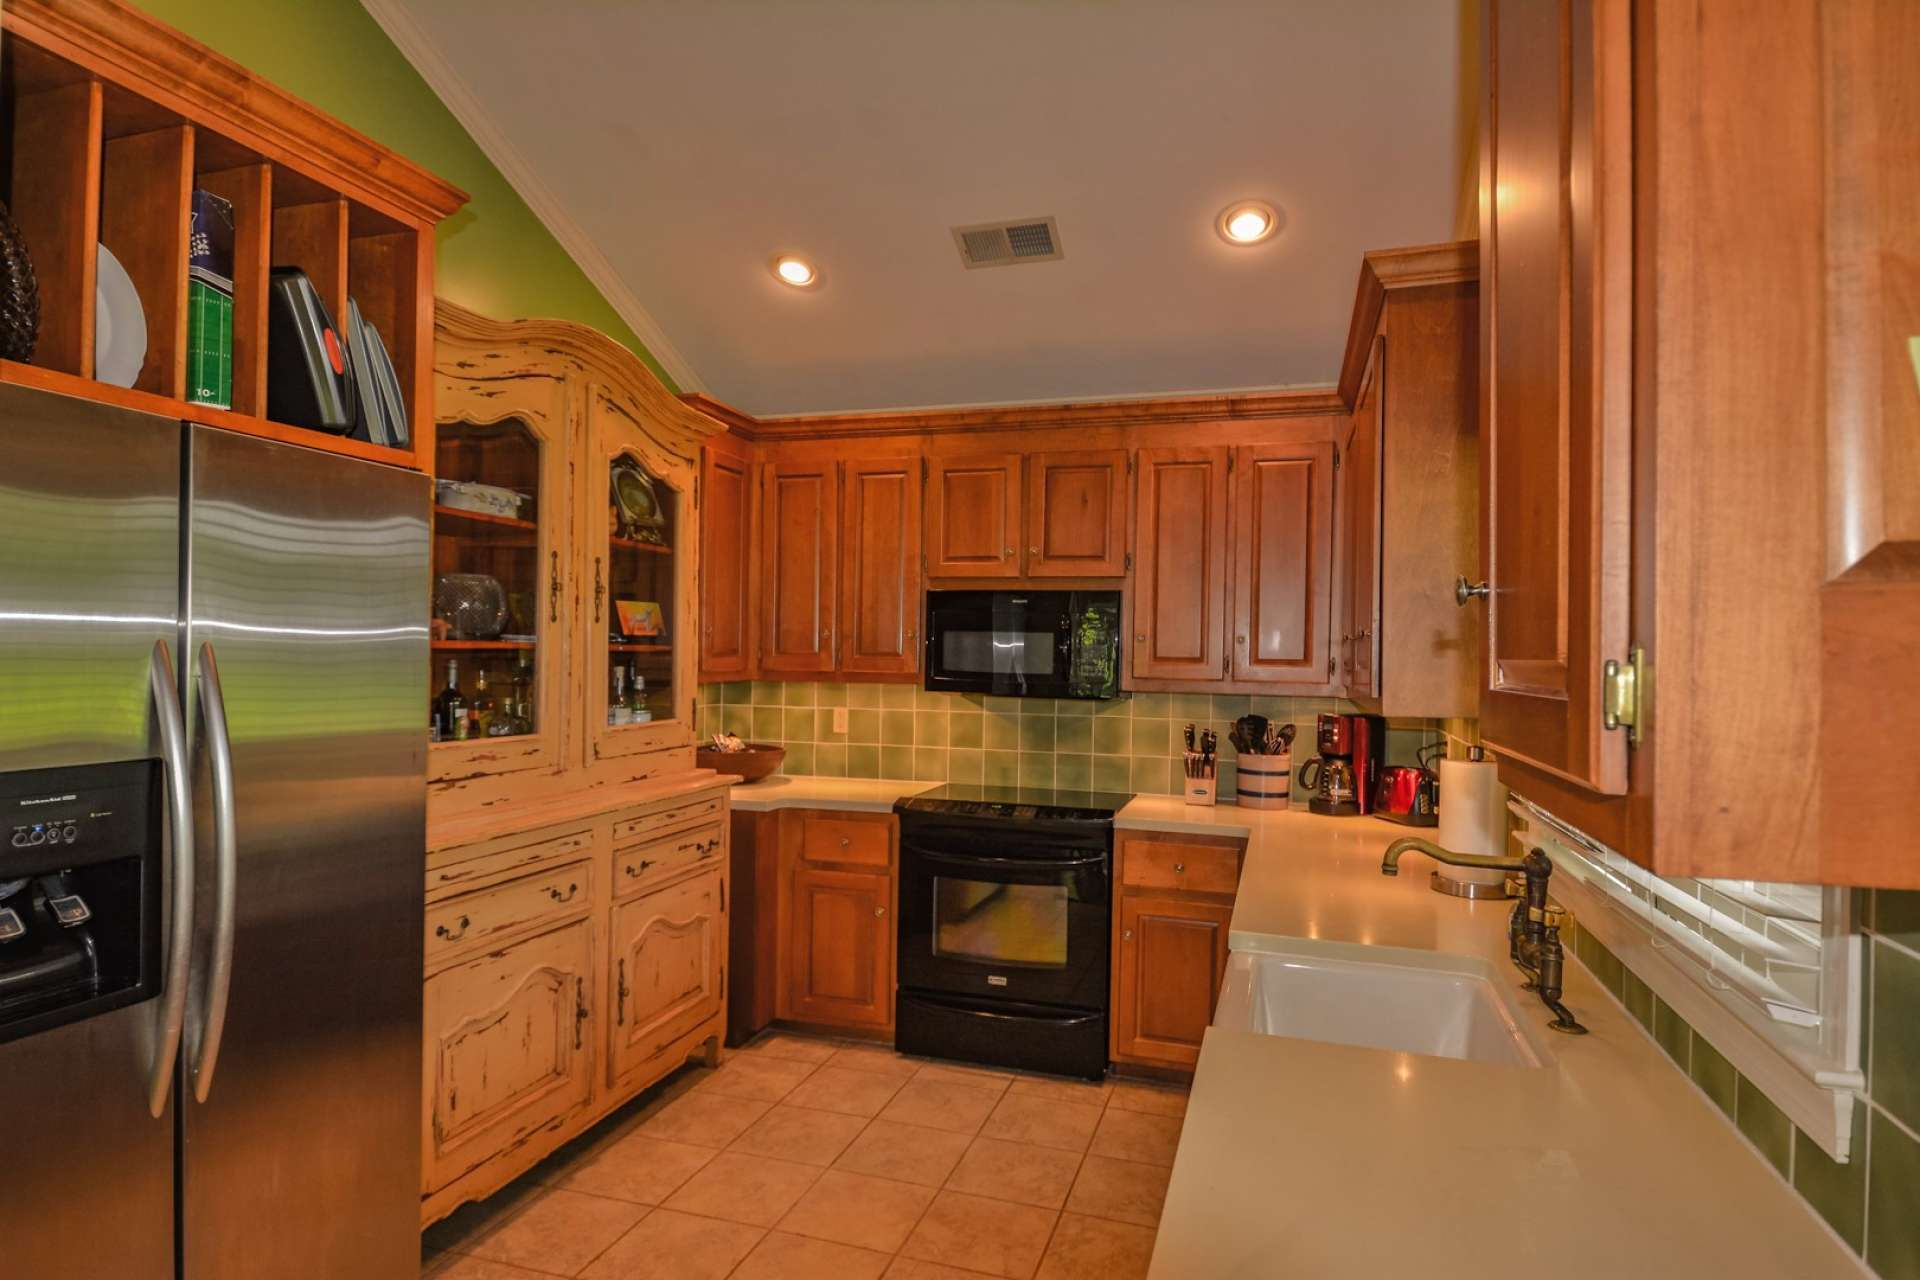 The galley style kitchen features Corian counters, tile flooring and ample cabinetry for work and storage space.